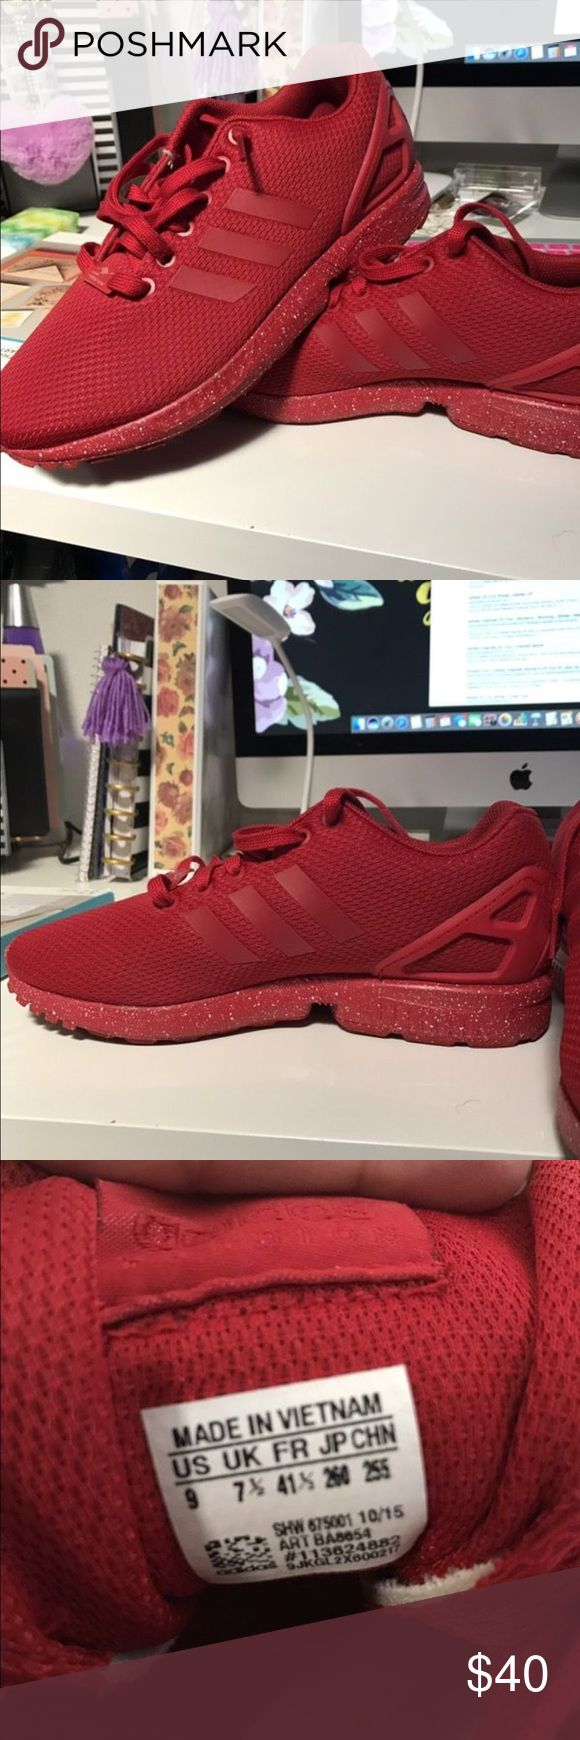 Adidas Torsion zx flux (women's) size 9 Used twice. Excellent condition. adidas Shoes Sneakers